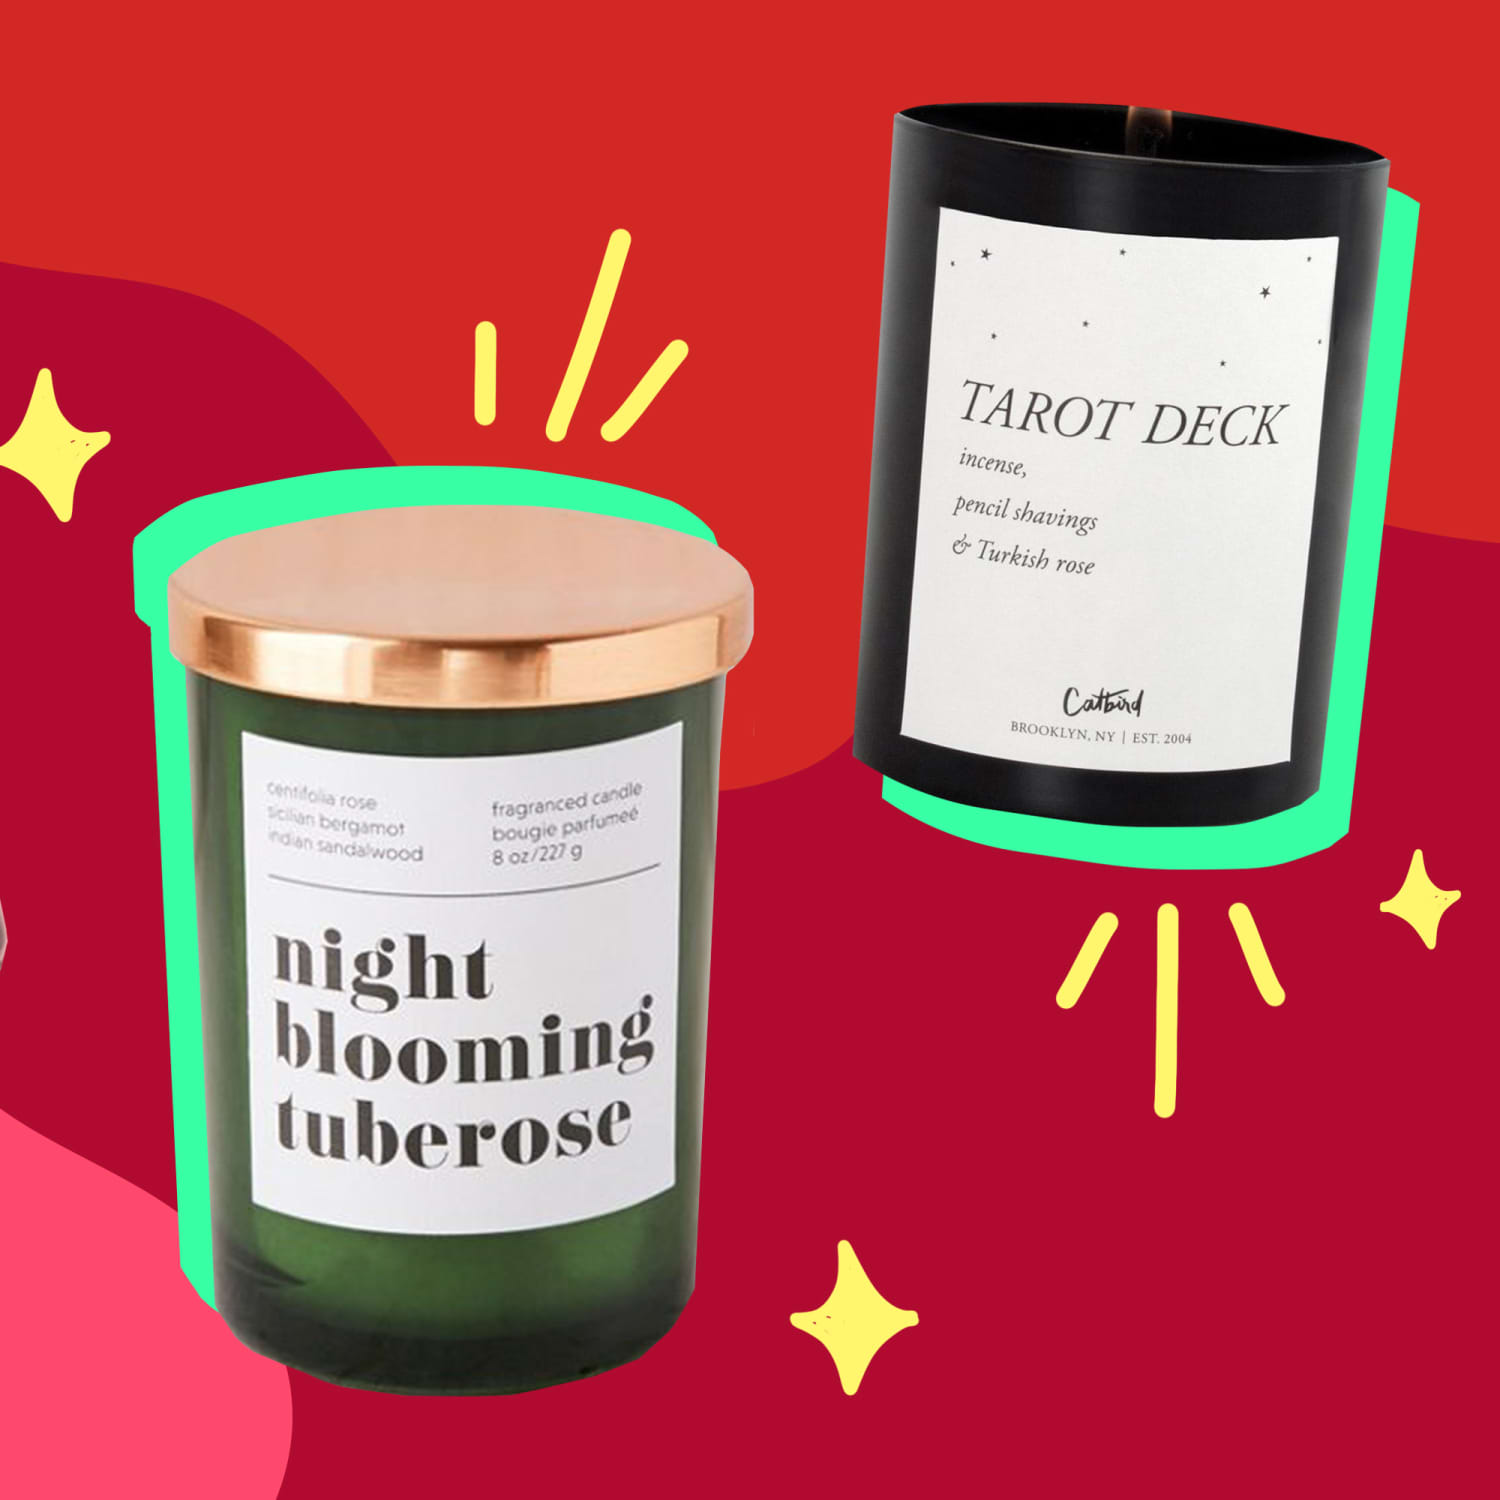 25 Best Candle Gift Ideas - Candle Holiday Gifts 2018